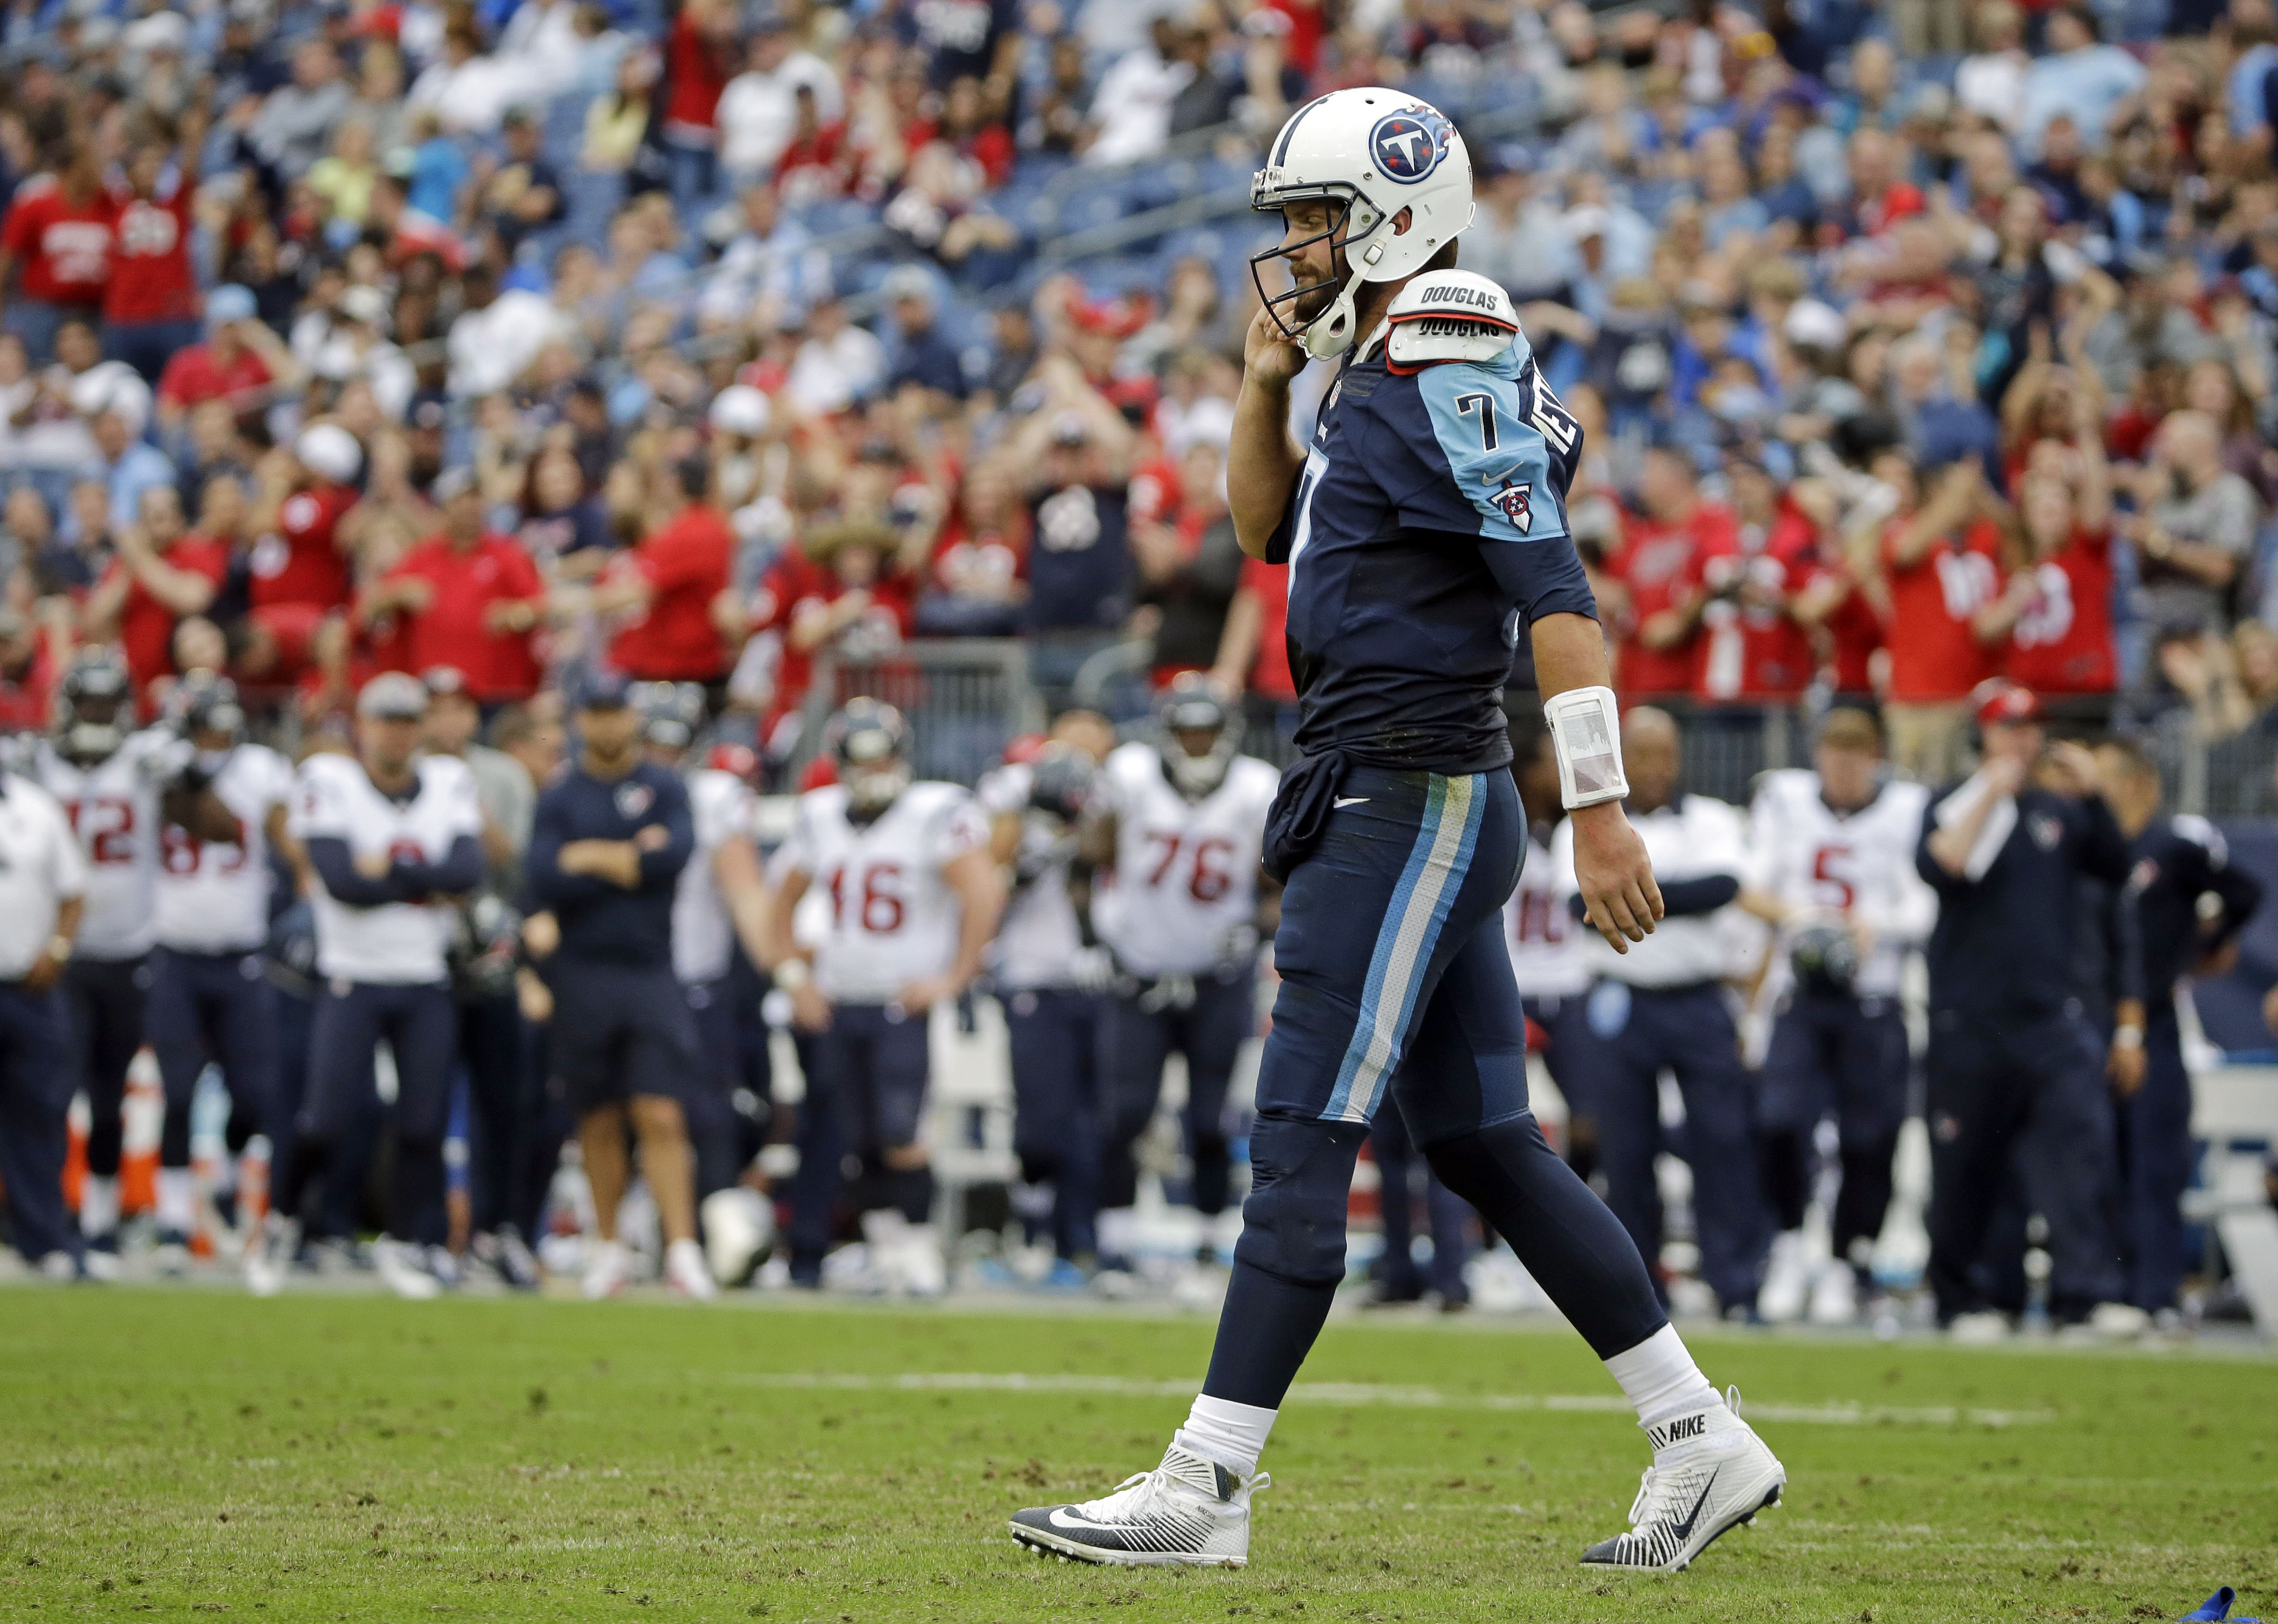 Tennessee Titans quarterback Zach Mettenberger walks to the sideline in the second half of a 34-6 loss to the Houston Texans in an NFL football game Sunday, Dec. 27, 2015, in Nashville, Tenn. (AP Photo/James Kenney)